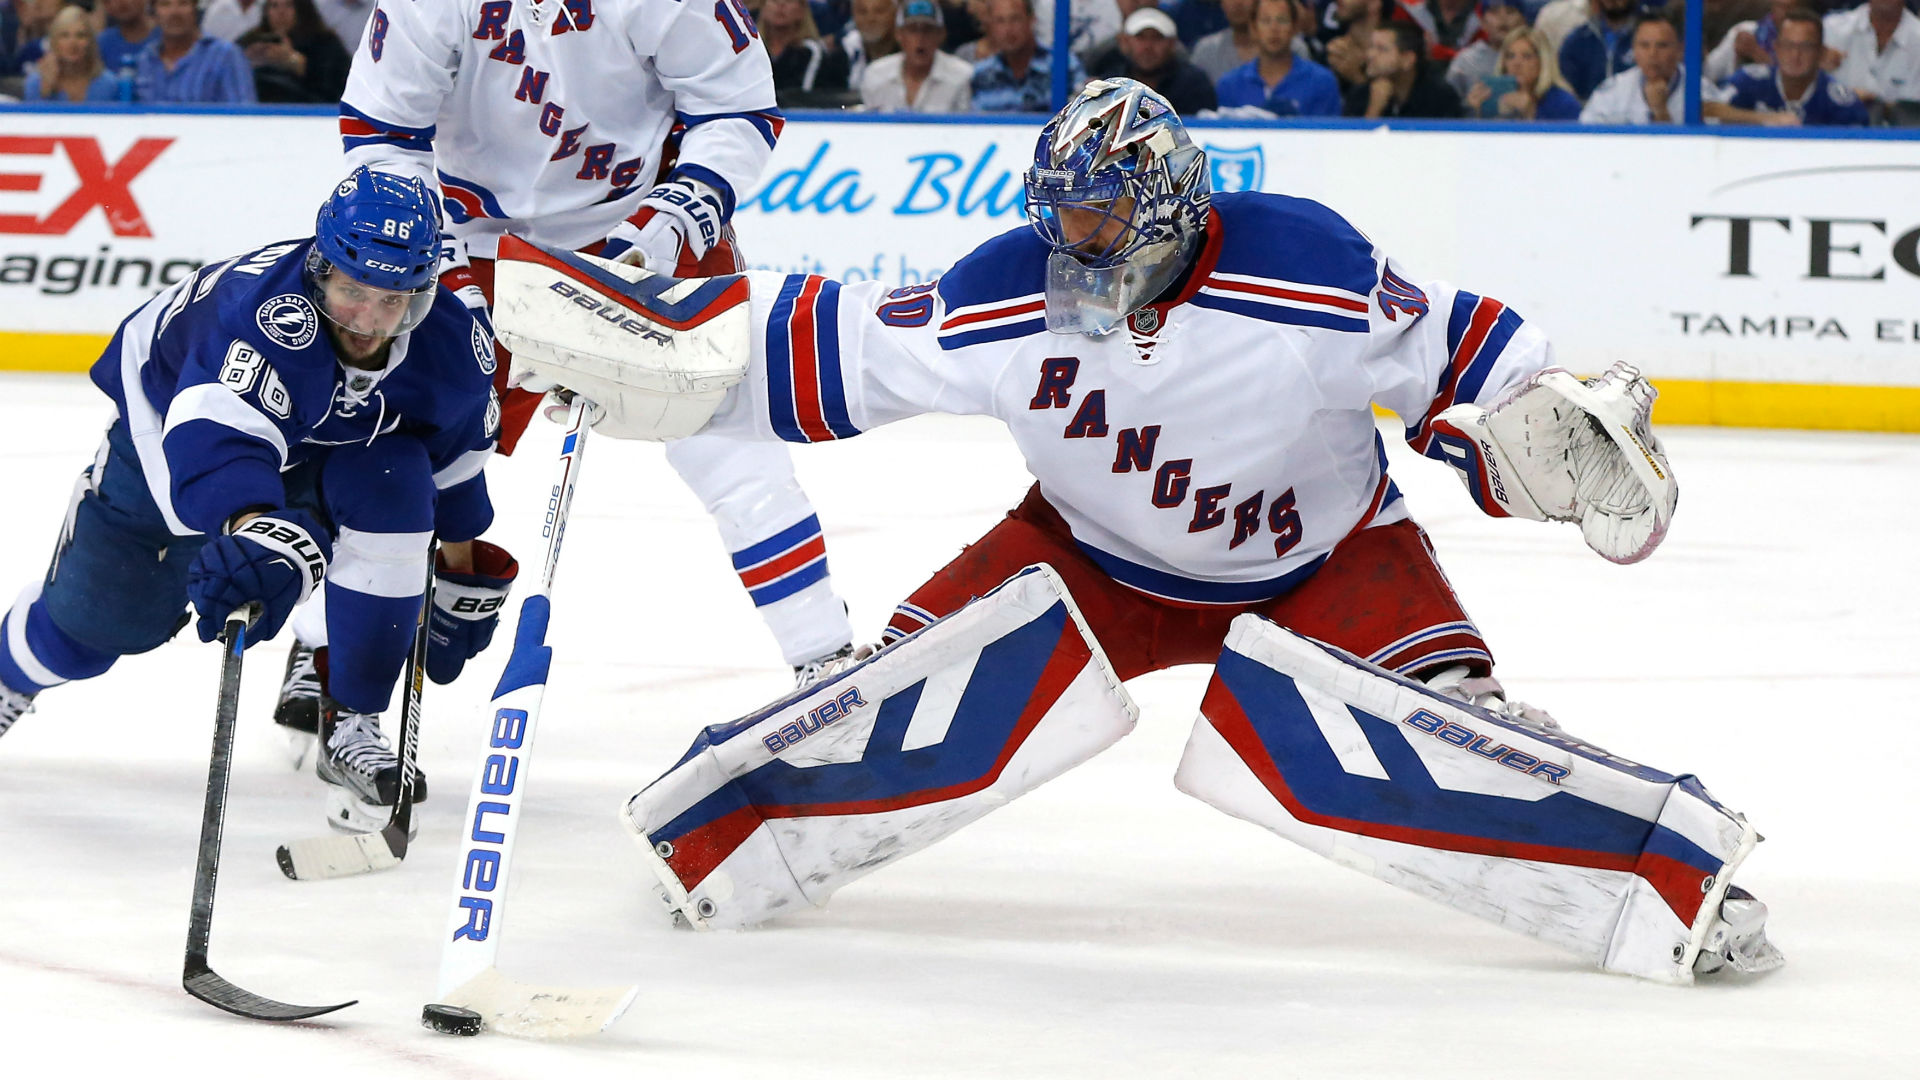 Eastern Conference finals: Top line, Henrik Lundqvist shine as Rangers rout Lightning to force Game 7